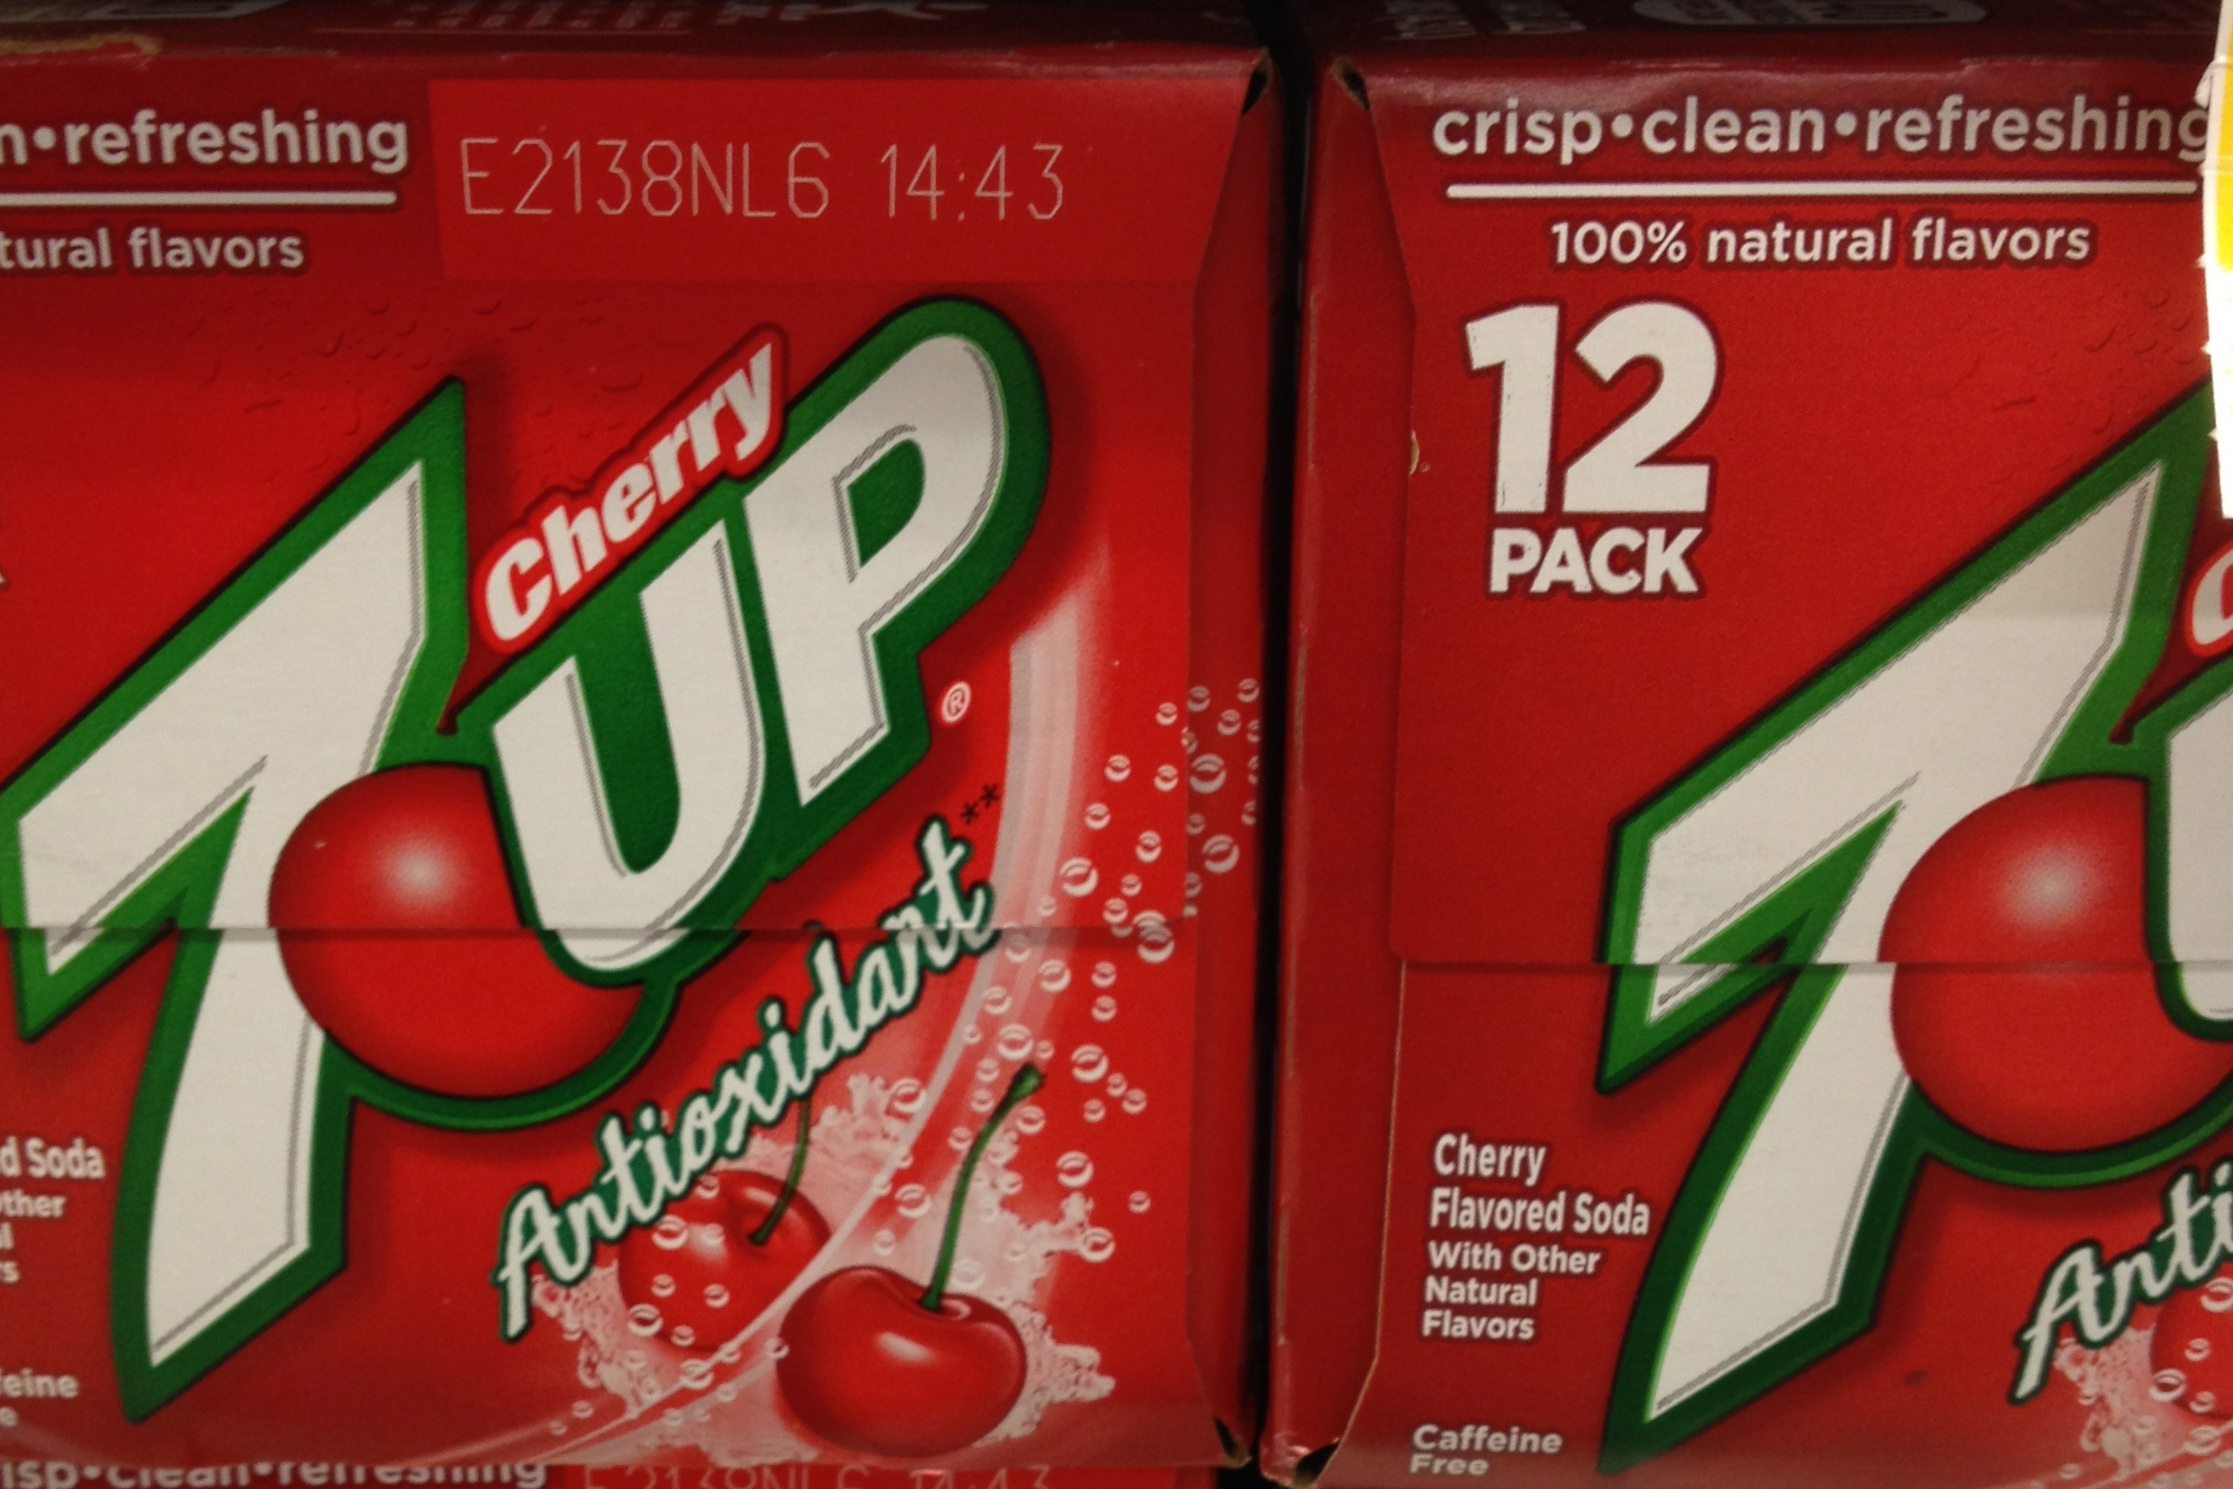 Cases of Cherry 7up soda, with 'antioxidant' on label